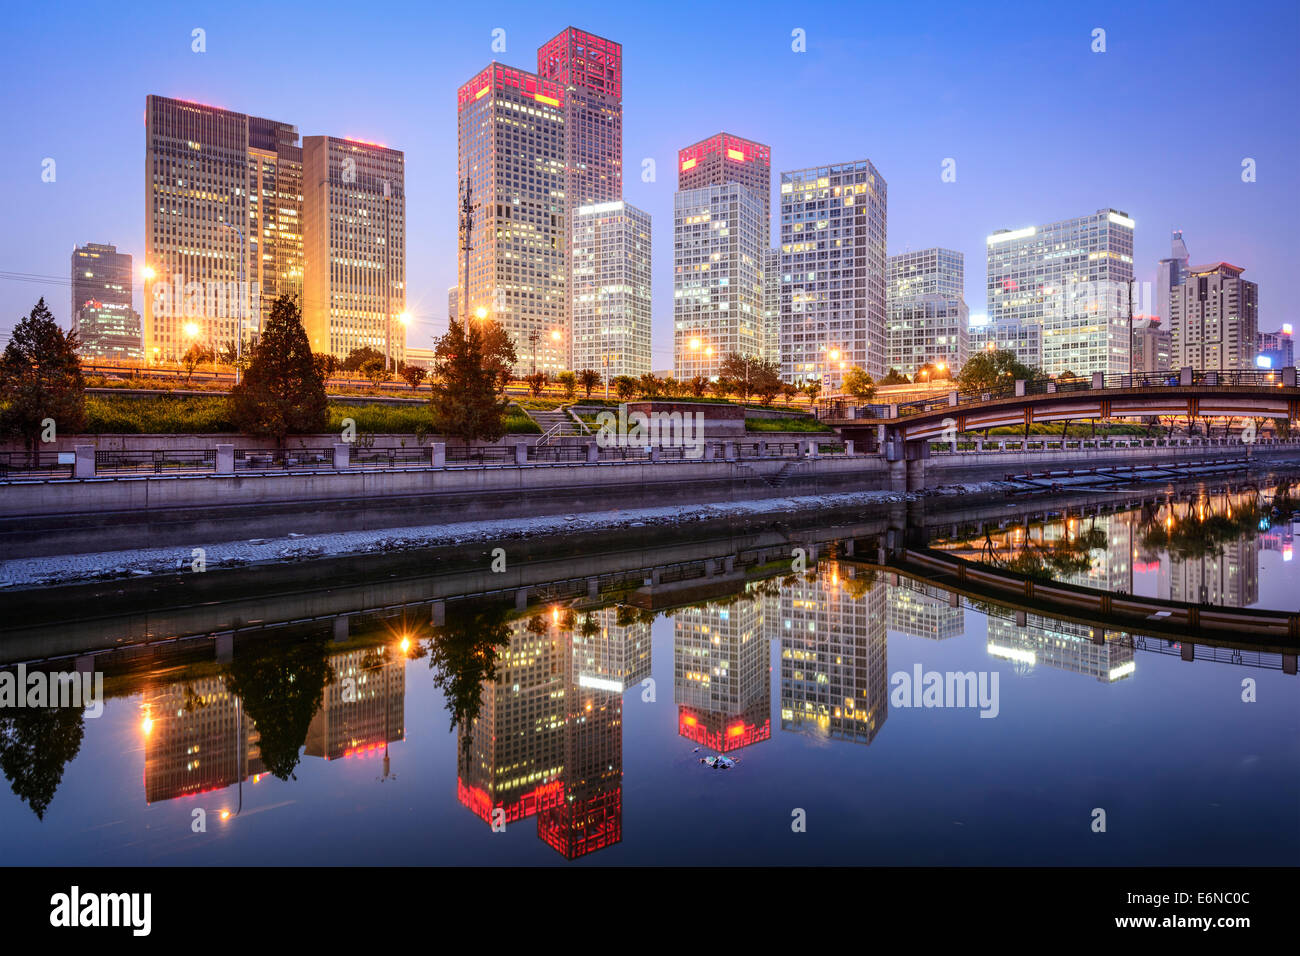 Beijing, China CBD city skyline. - Stock Image